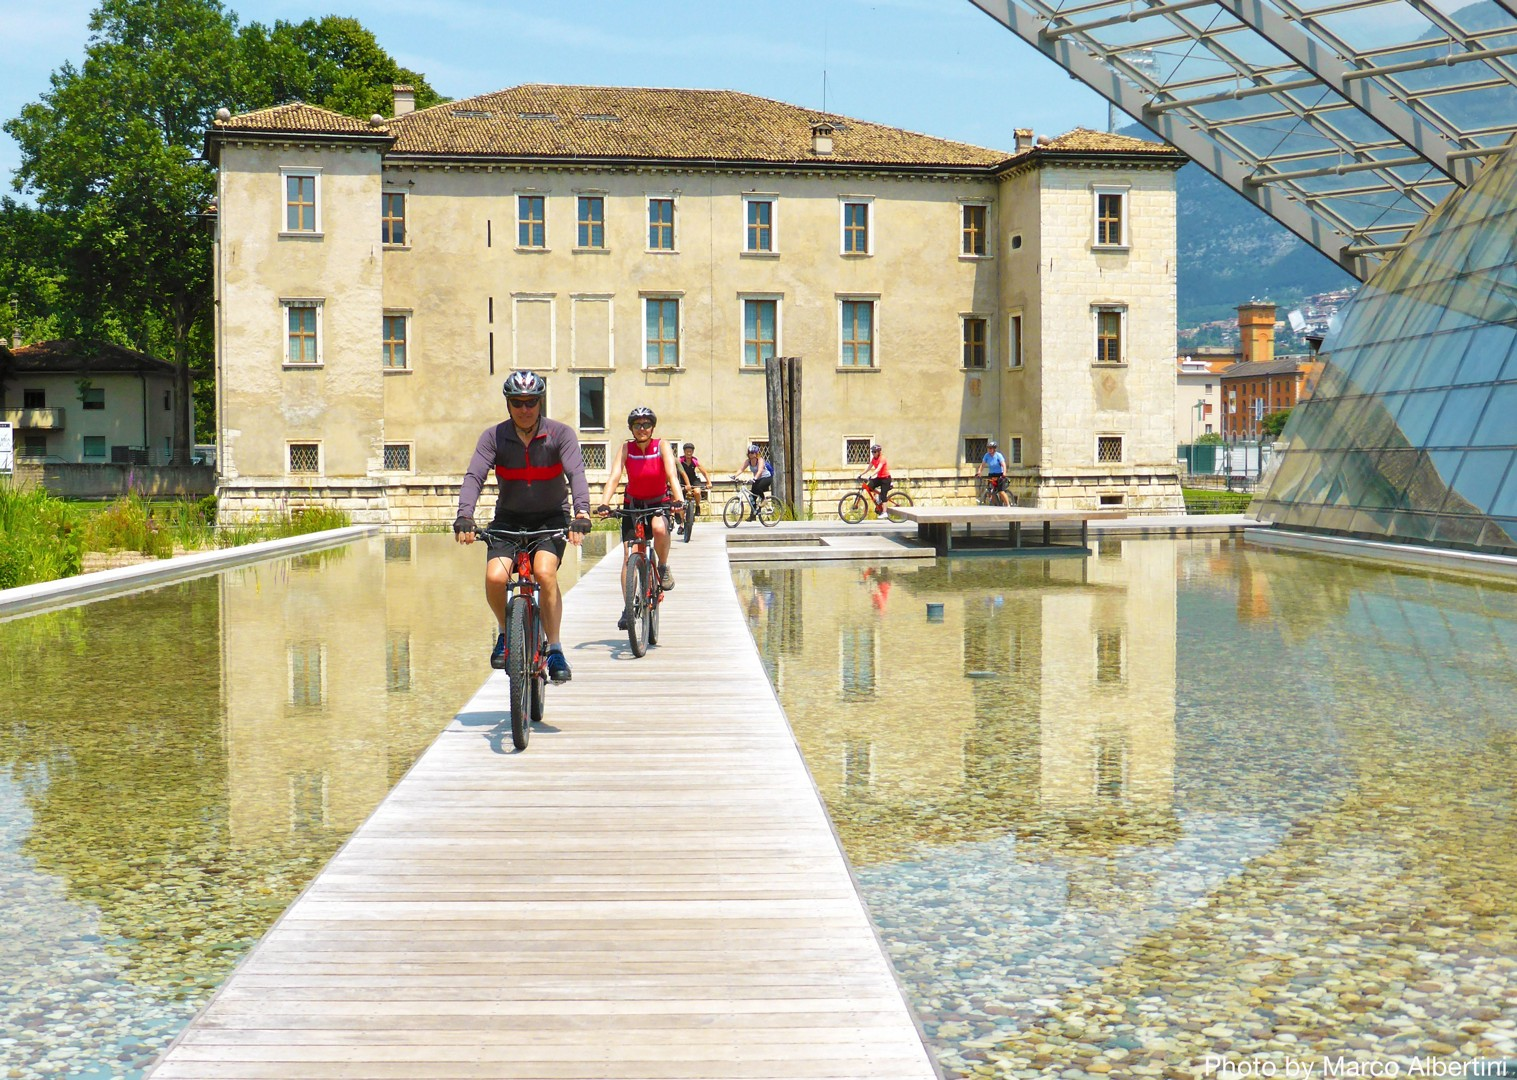 cultural-leisurely-guided-cycling-adventure-italy.jpg - Austria and Italy - La Via Claudia - Guided Leisure Cycling Holiday - Italia Leisure and Family Cycling